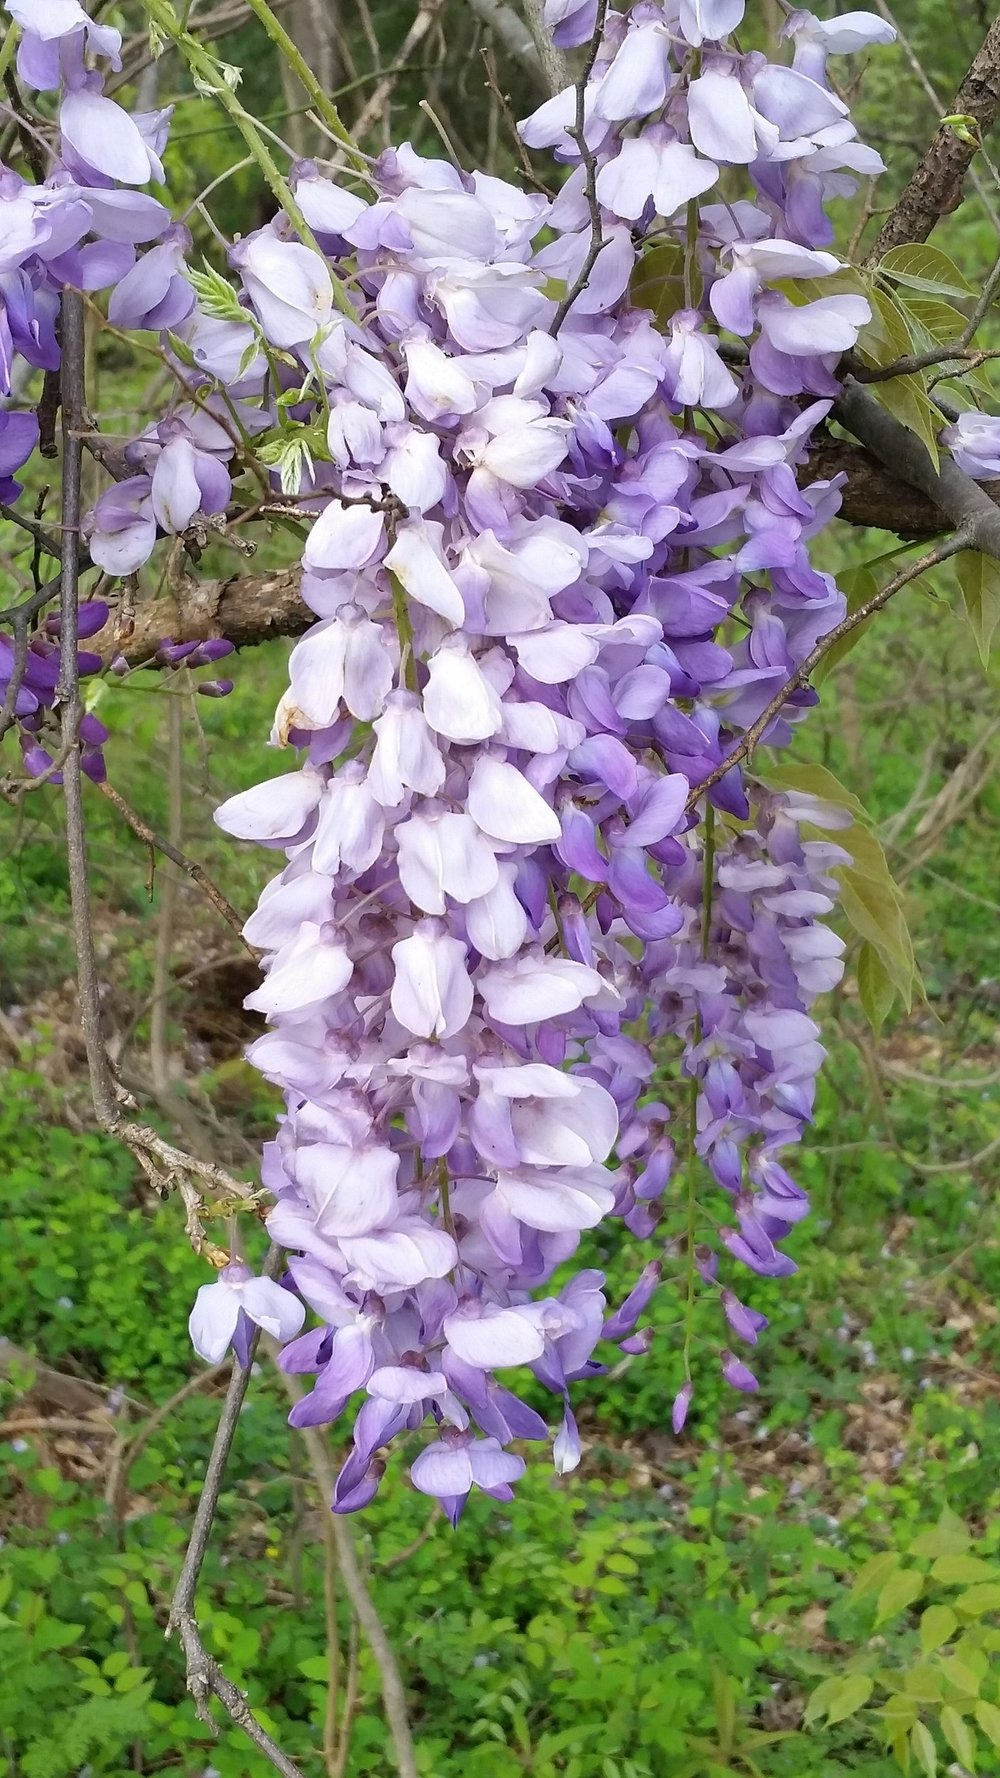 A close view of Wisteria bloom cluster.